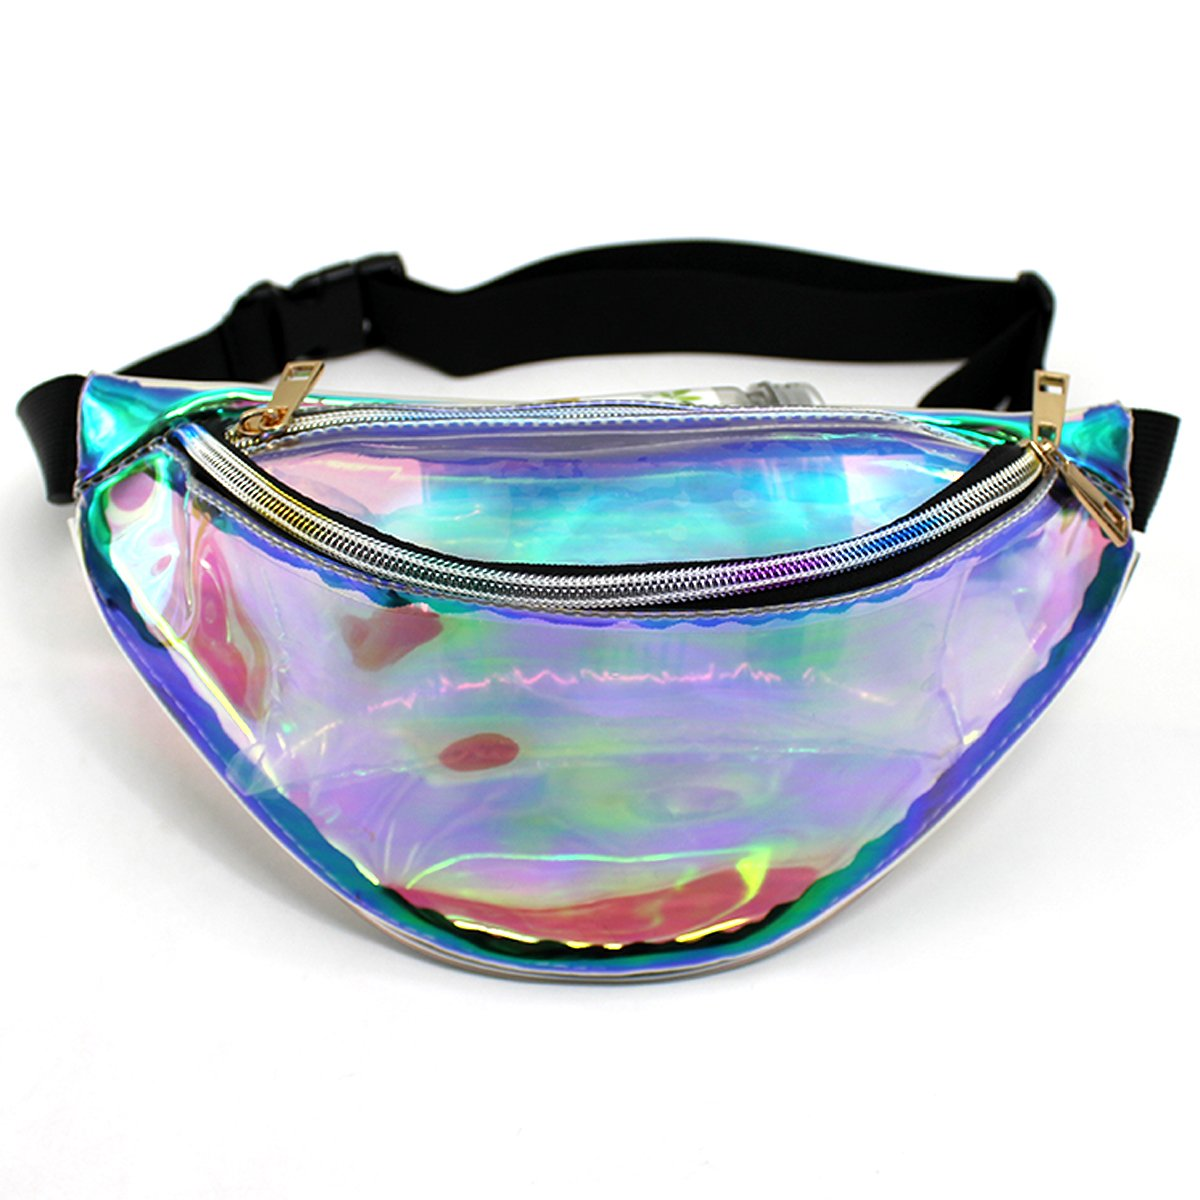 Mily Silver Hologram Fanny Pack Laser Fanny Pack Perfect for Raves and Festivals (Iridescent2 small size) by Mily (Image #6)